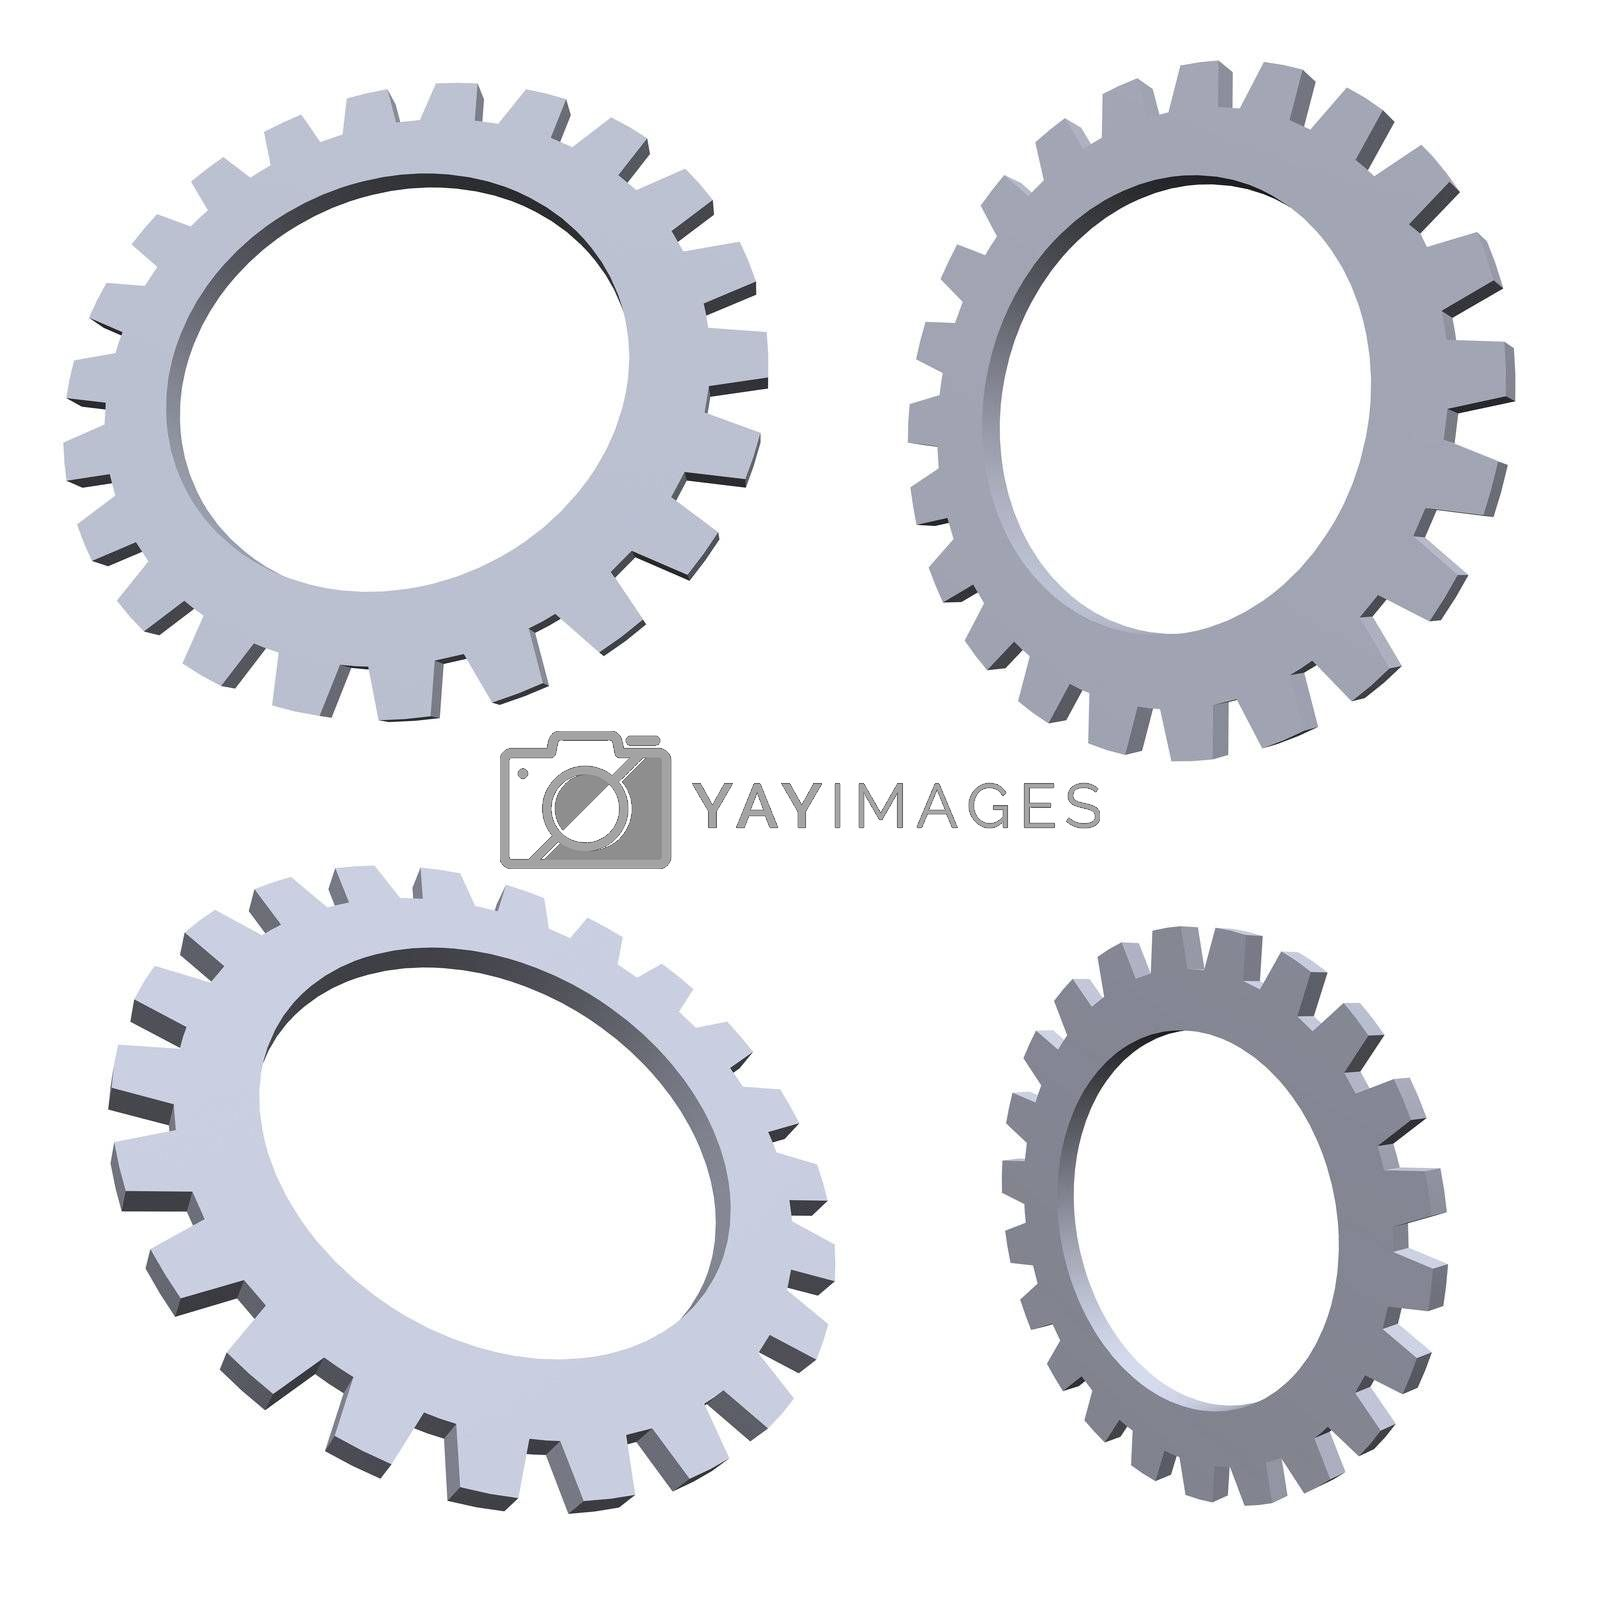 4 gears in various positions